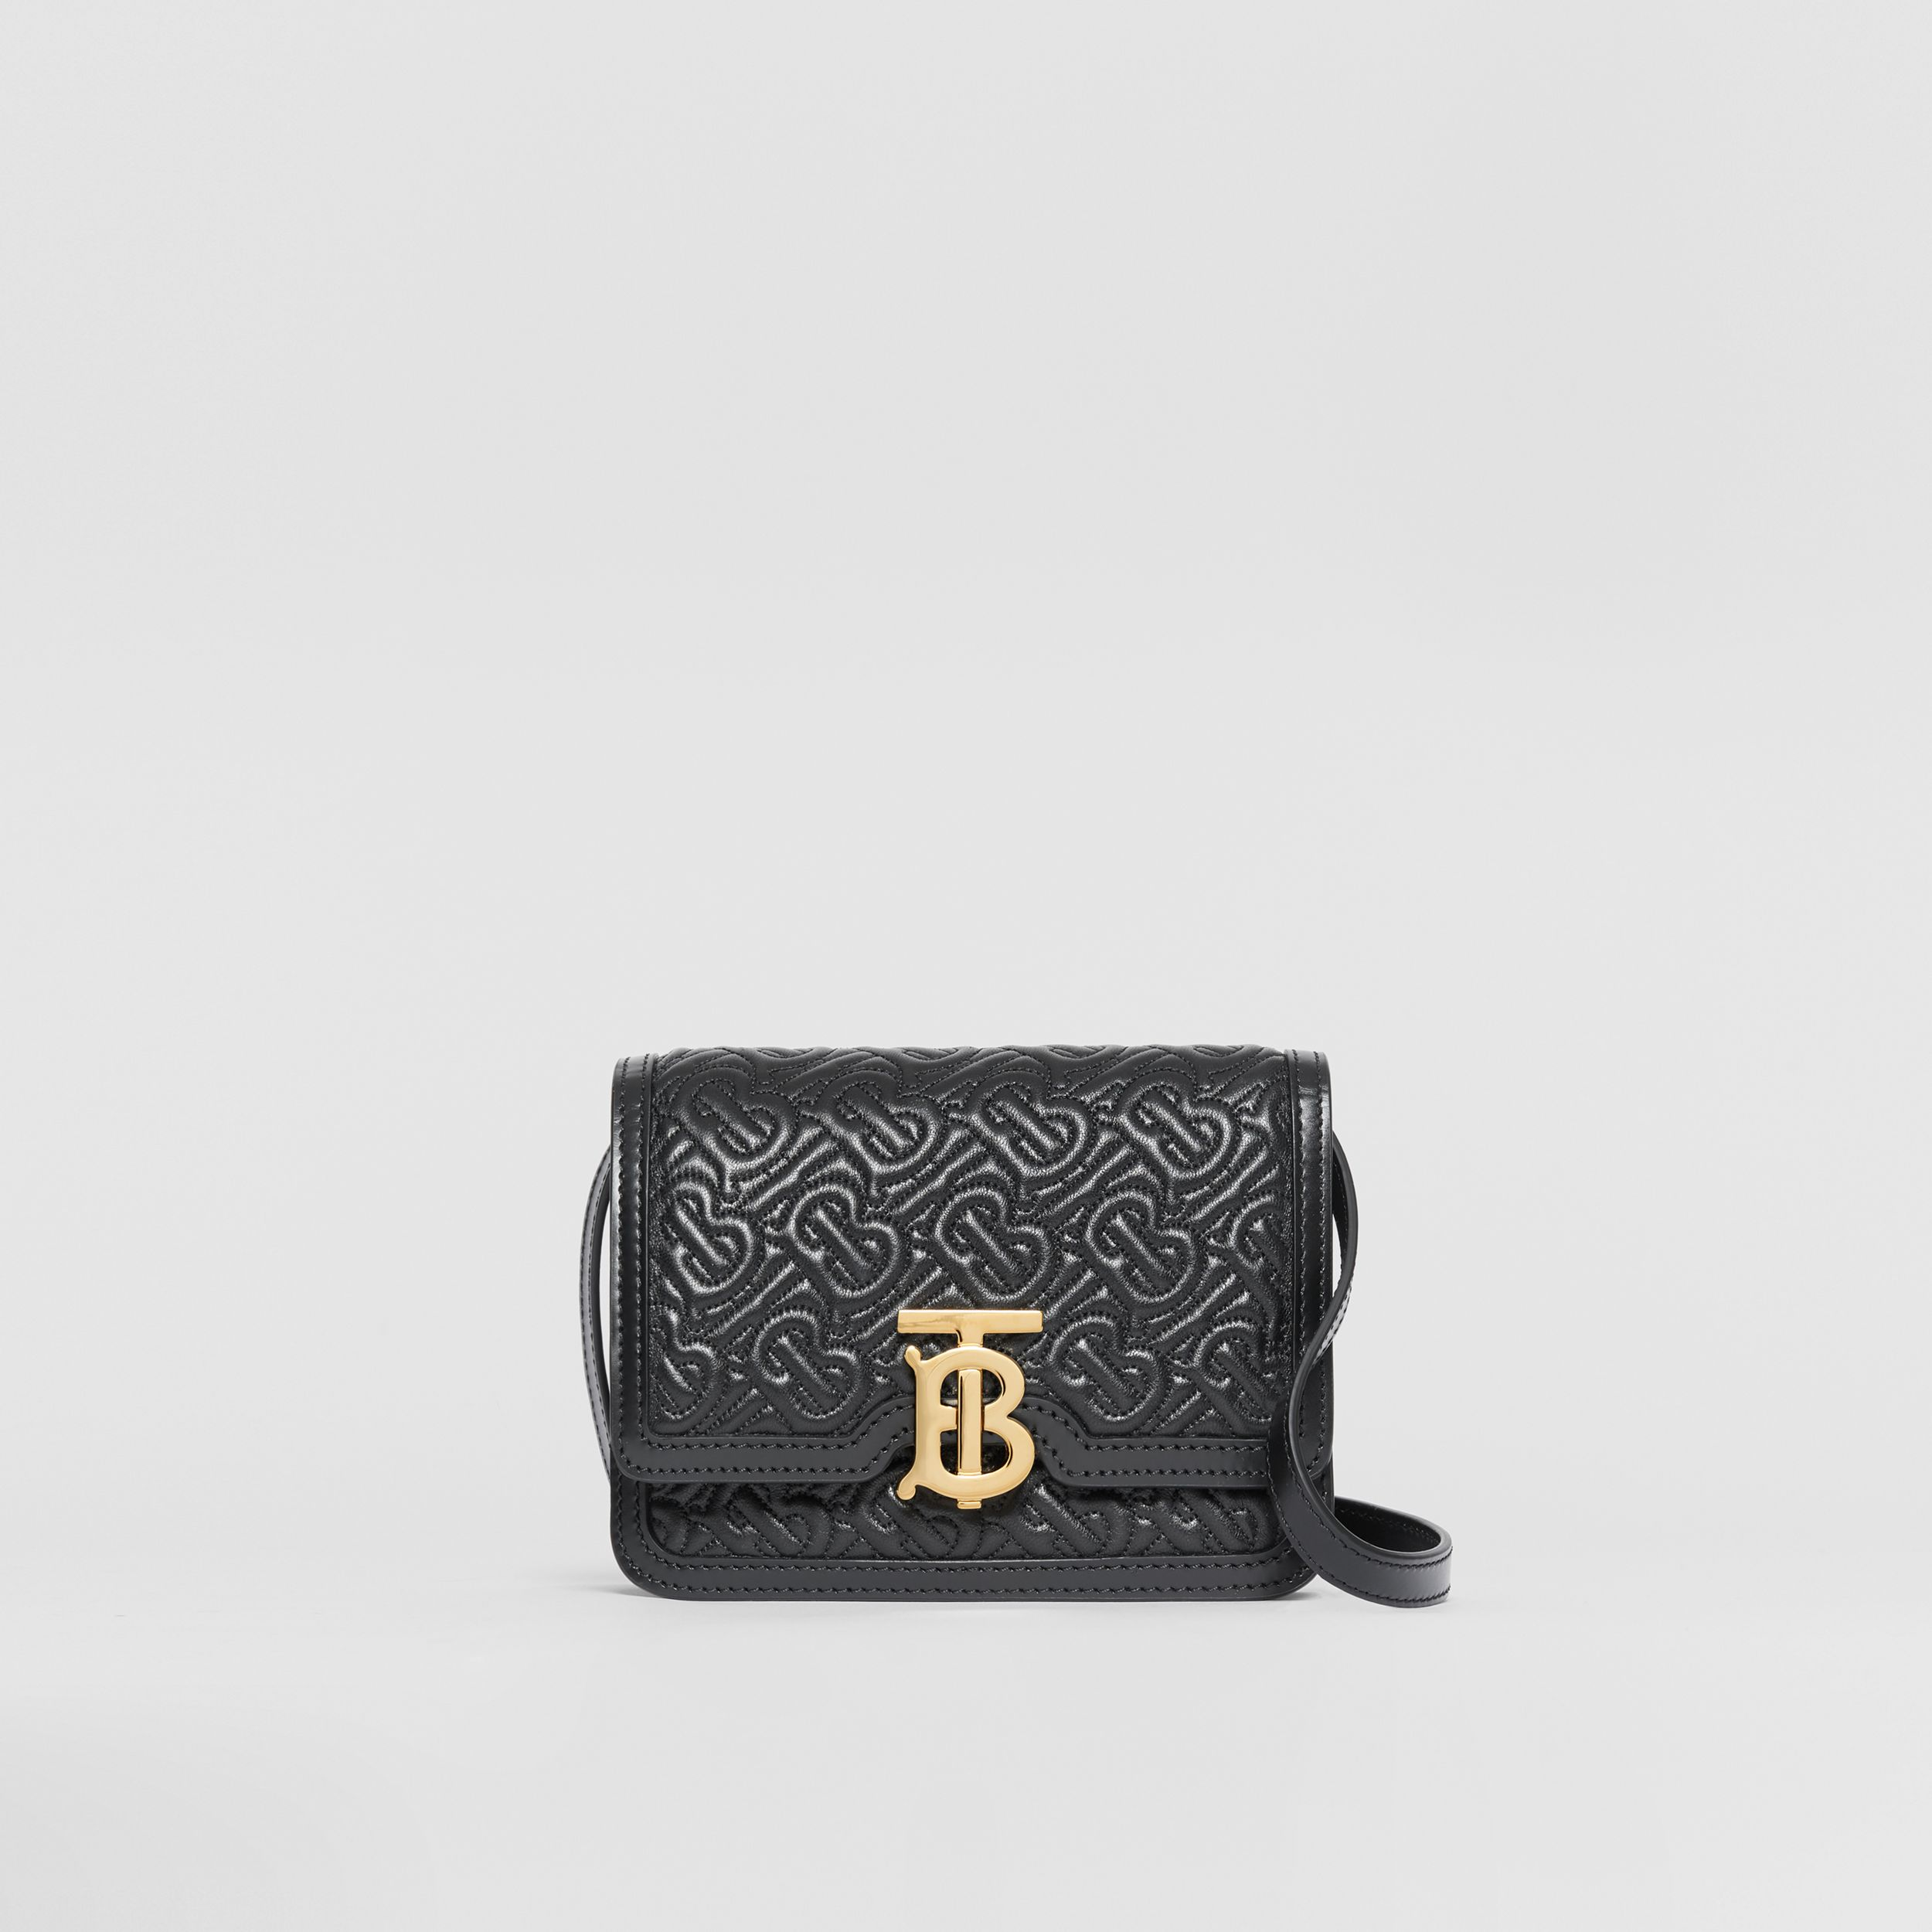 Mini Quilted Monogram Lambskin TB Bag in Black - Women | Burberry - 1